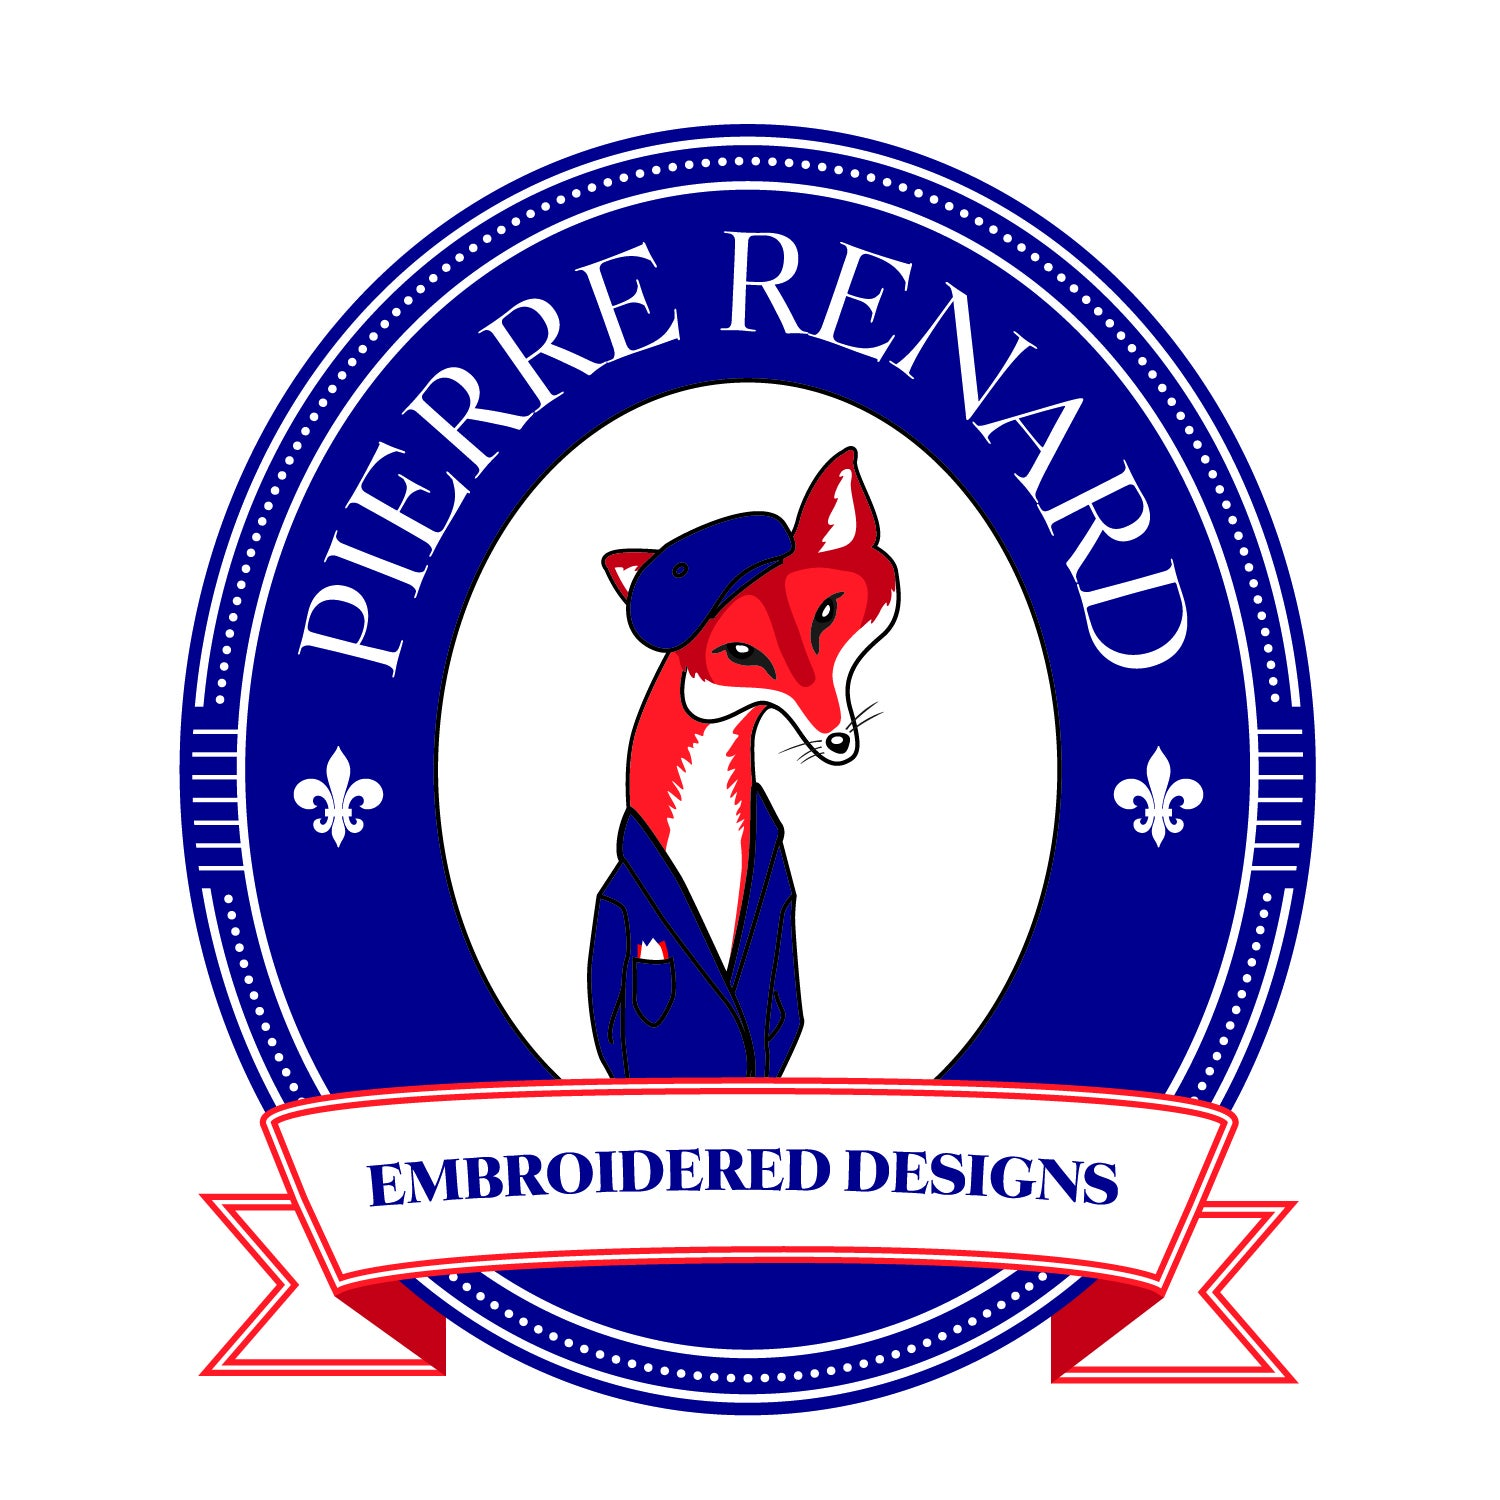 Pierre Renard Embroidered Designs